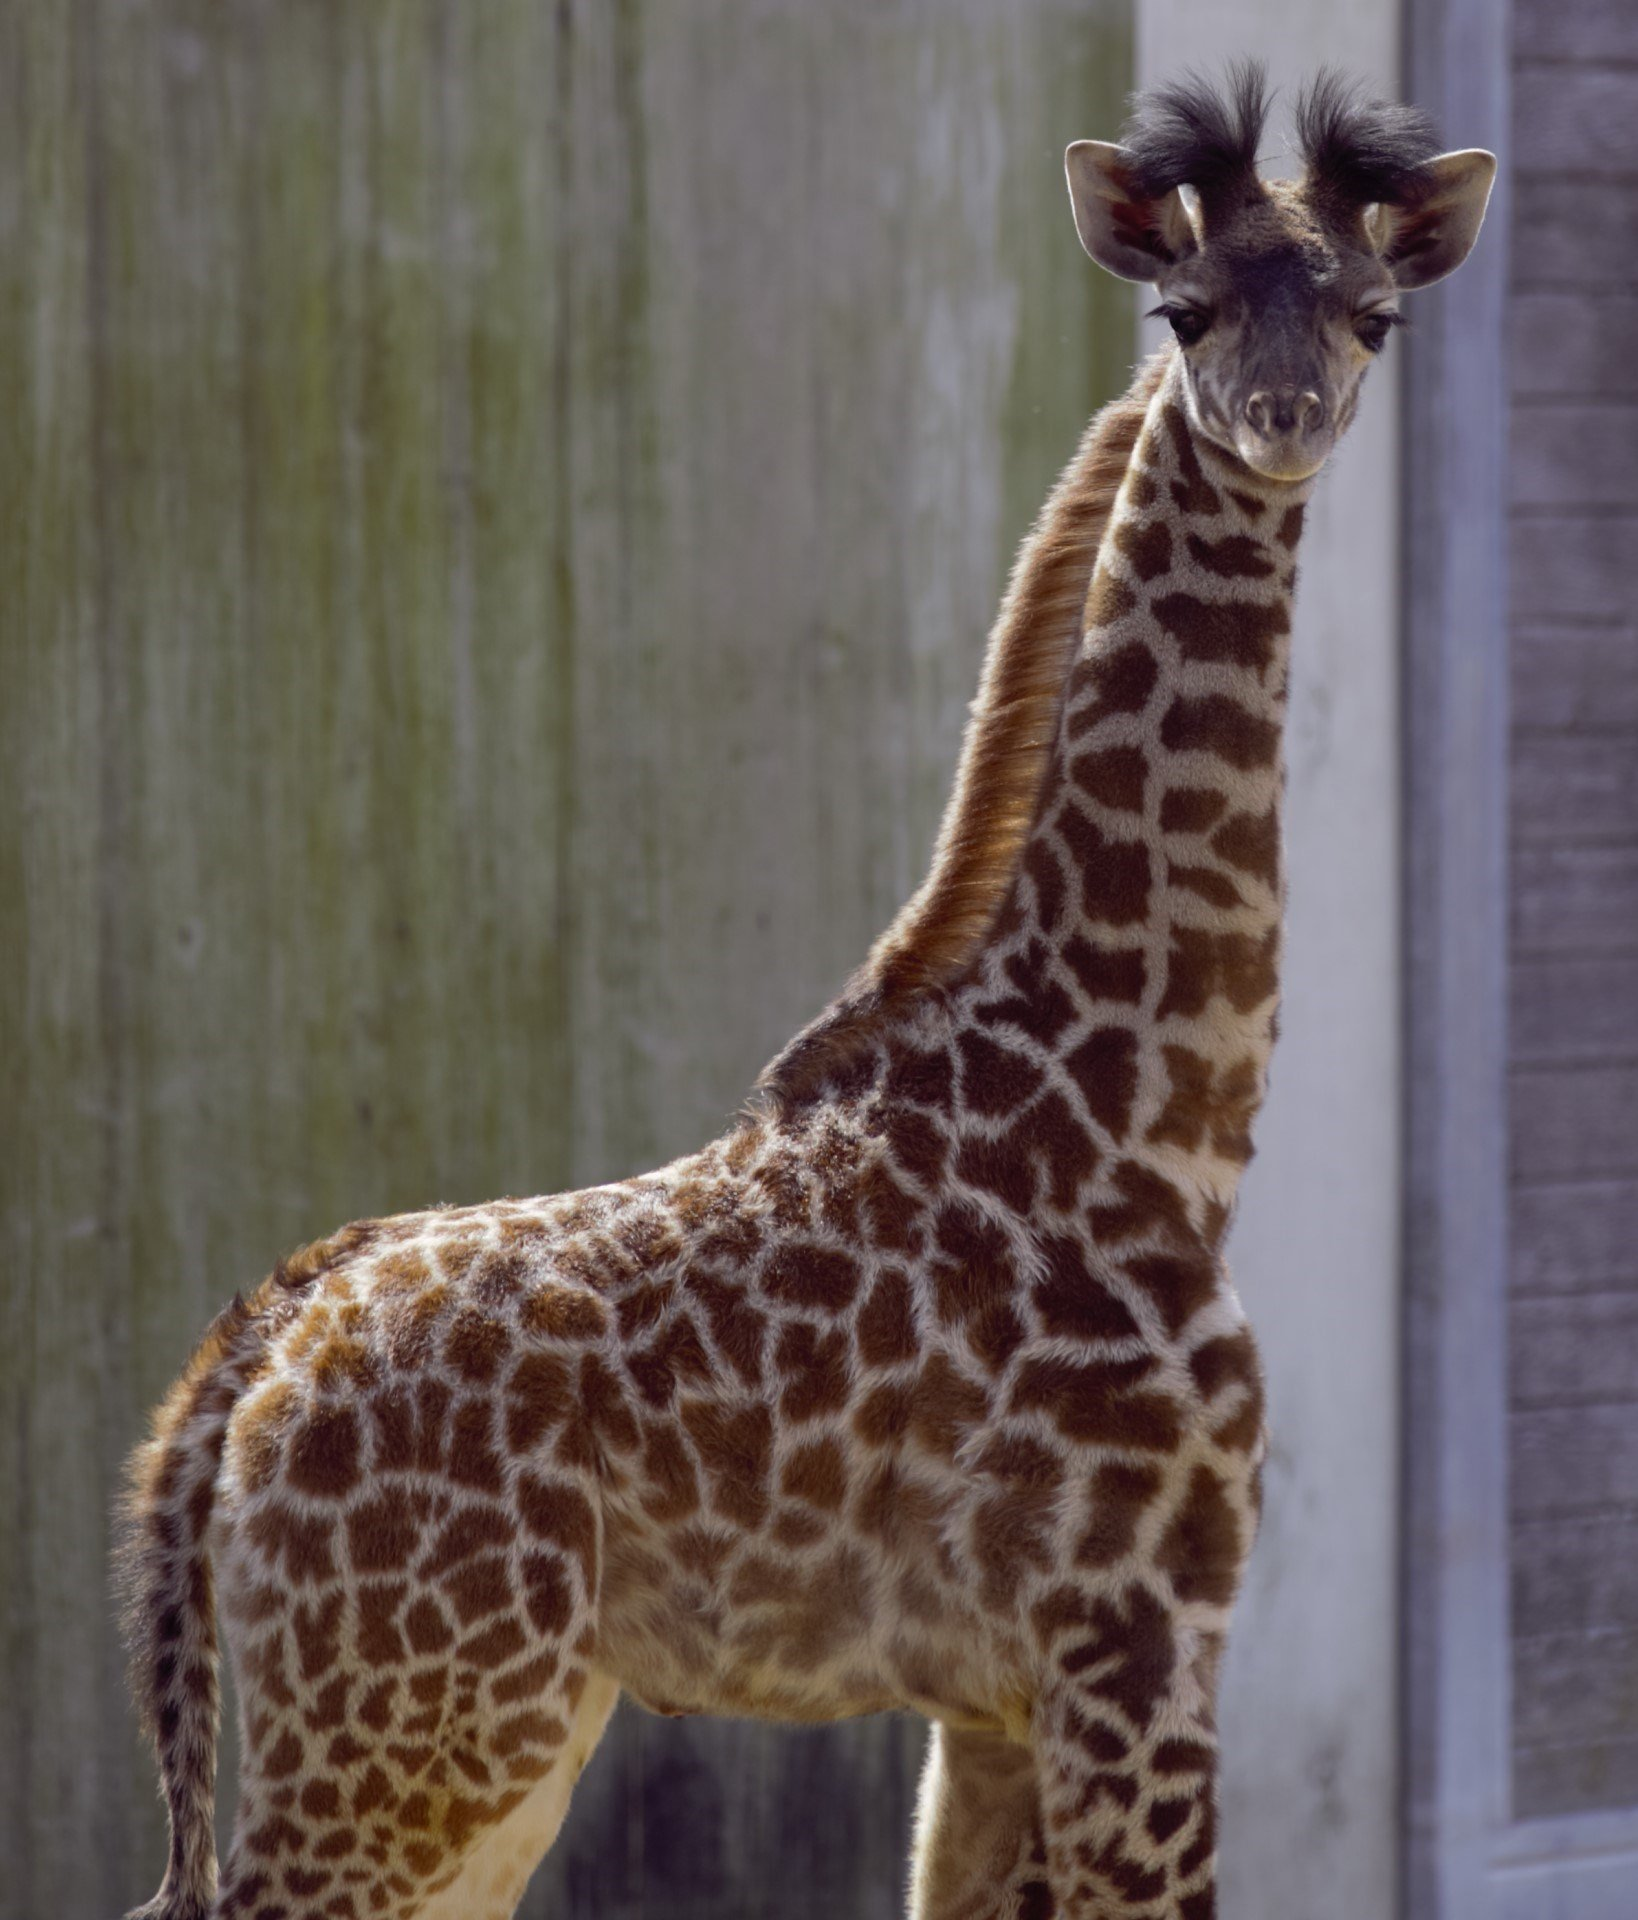 With warmer temperatures finally on the horizon, the Kansas City Zoo's giraffe calf is ready to make her public debut. (Kansas City Zoo)